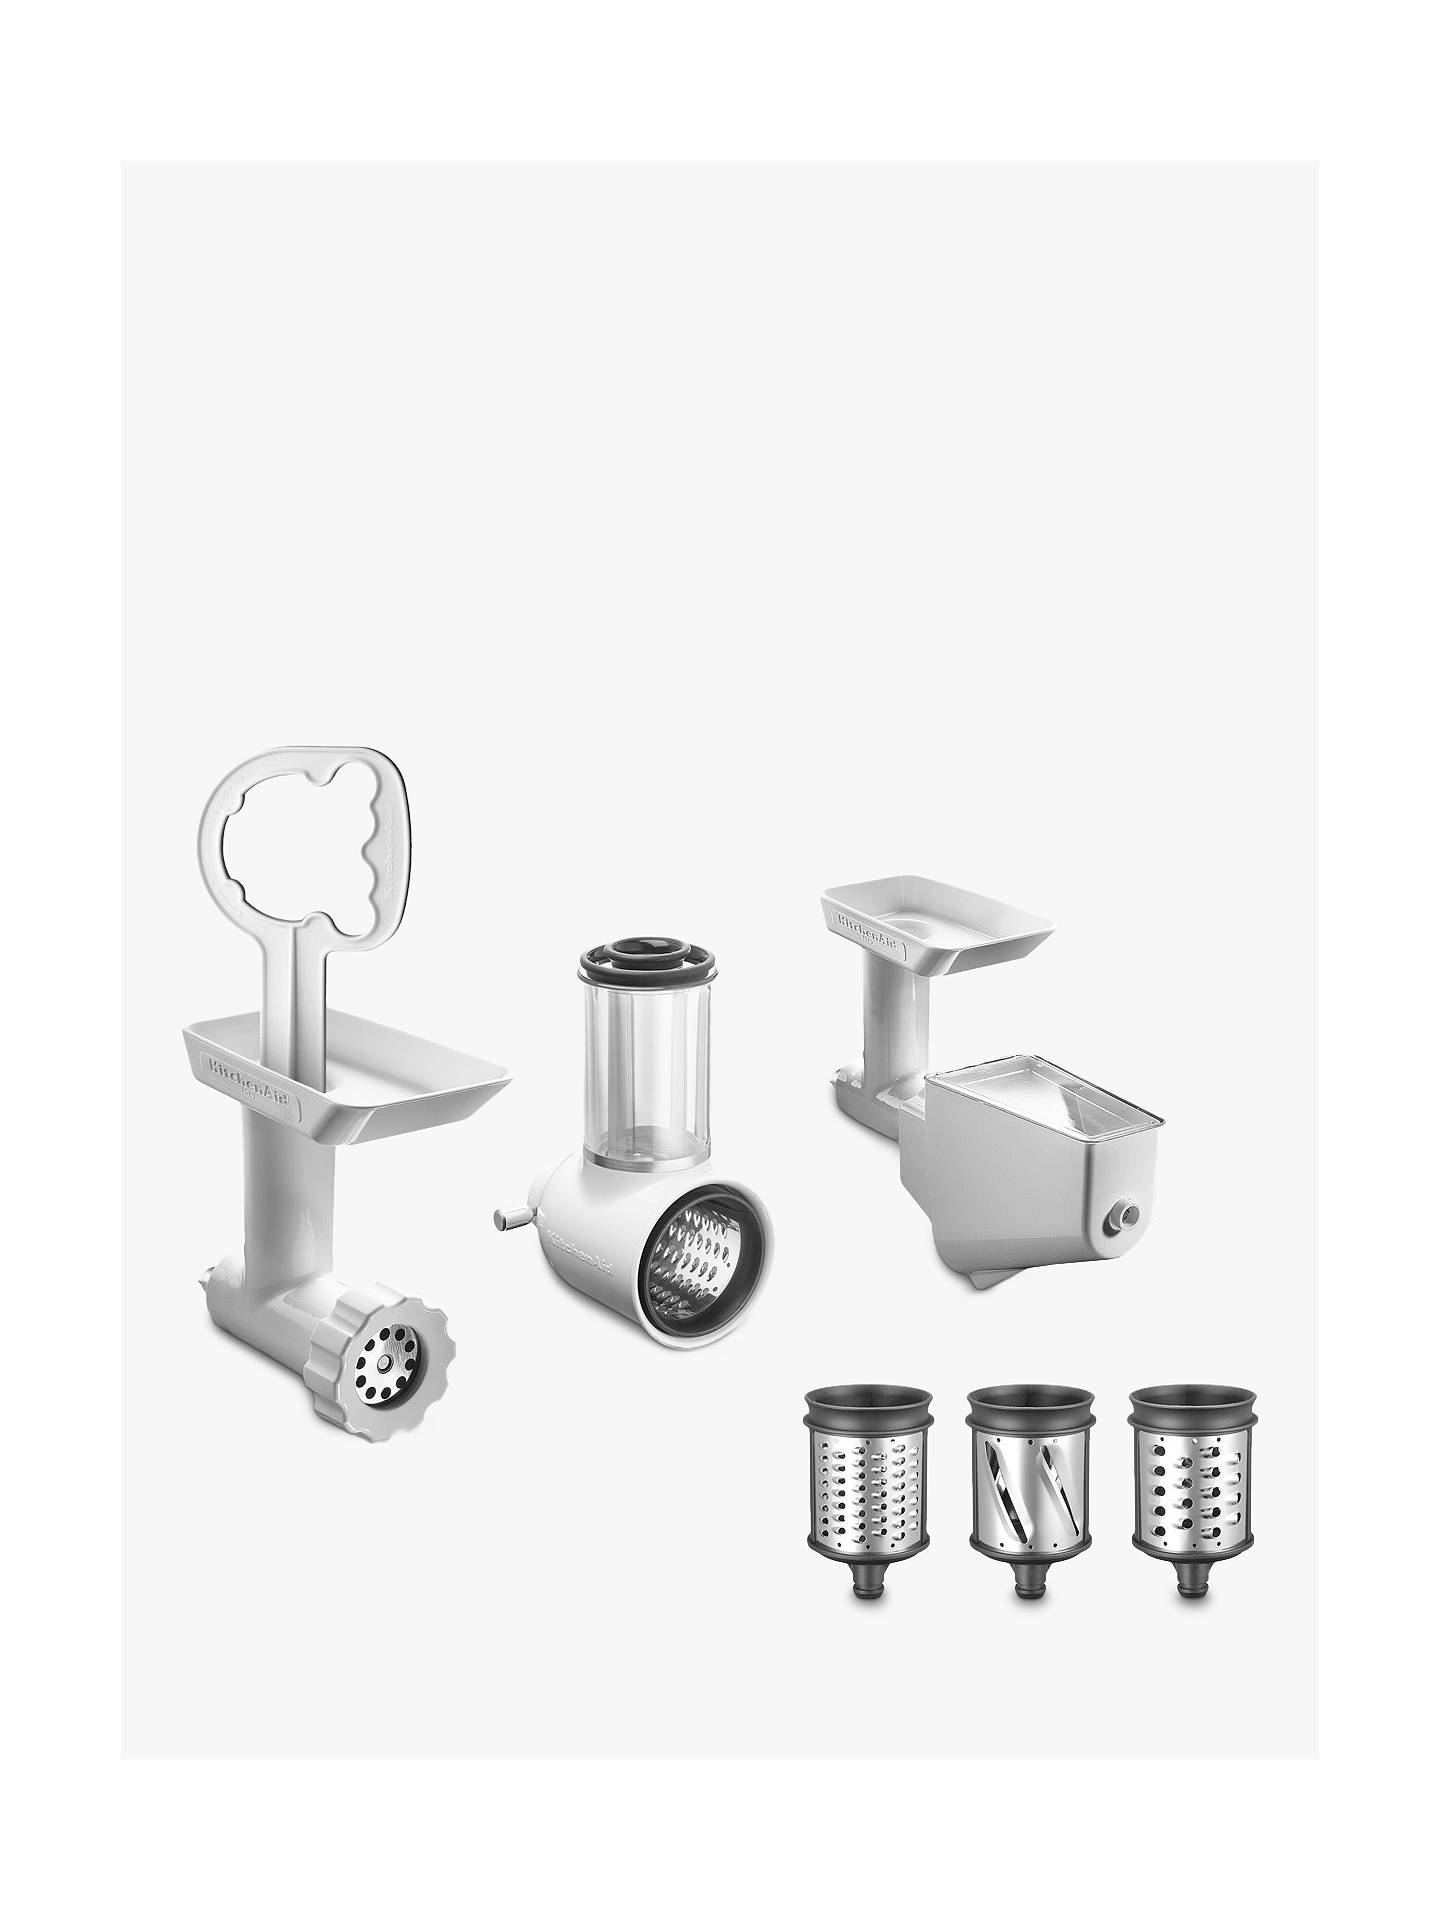 Kitchenaid Fppc Mixer Attachment Pack At John Lewis Partners